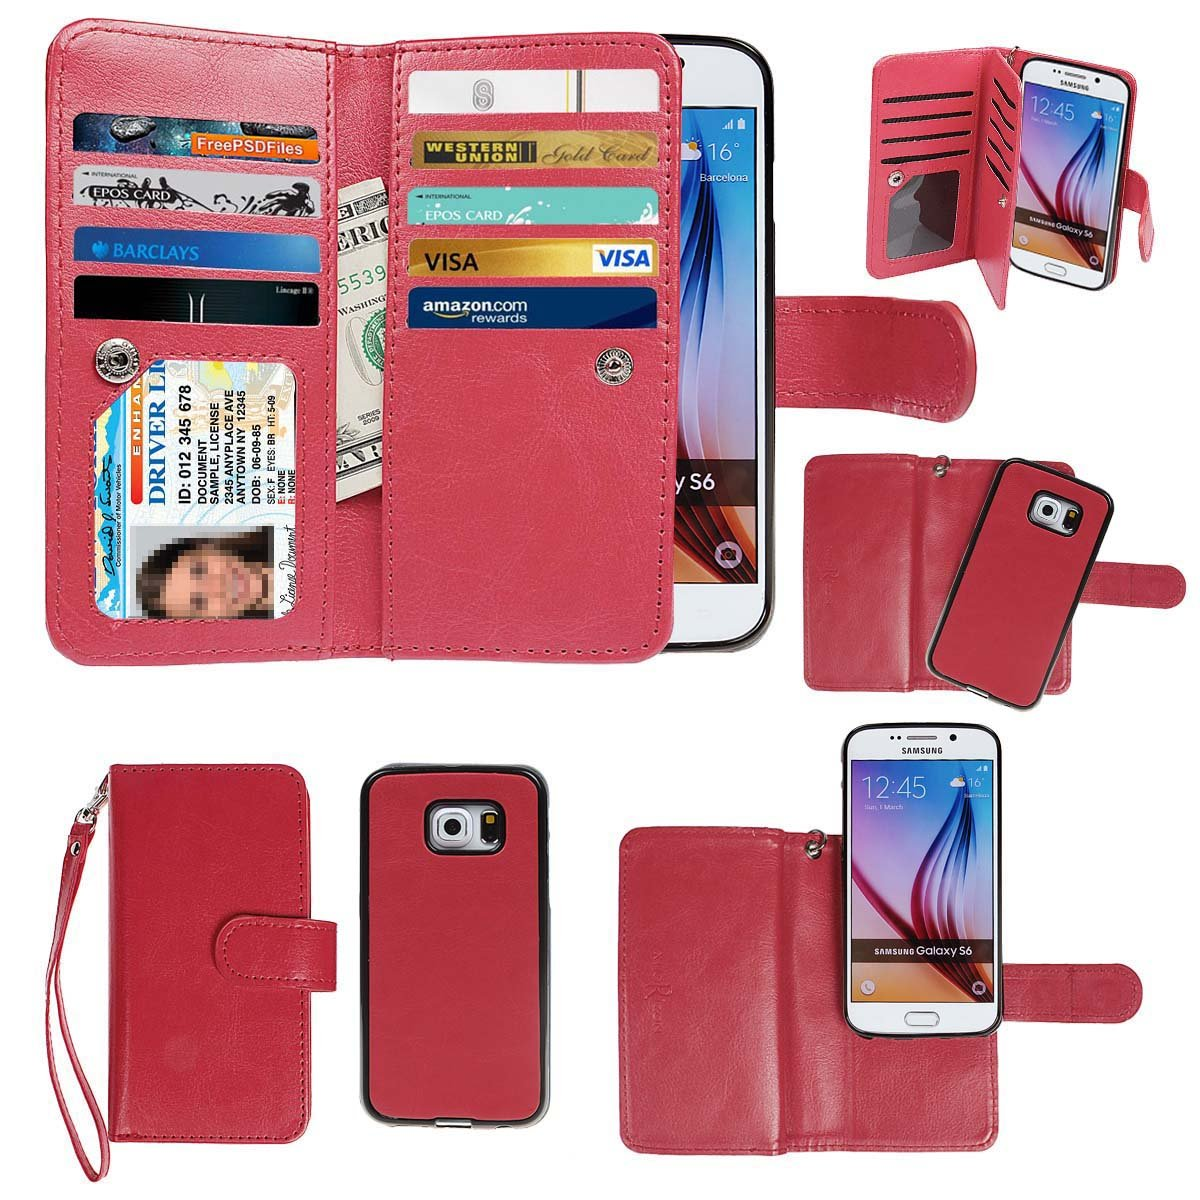 Samsung Galaxy S6 Case, xhorizon TM Premium Leather Folio Case [Wallet Function] [Magnetic Detachable] Fashion Wristlet Lanyard Hand Strap Purse Soft Flip Book Style Multiple Card Slots Cash Compartment Pocket with Magnetic Closure Case Cover Skin ZA5 for